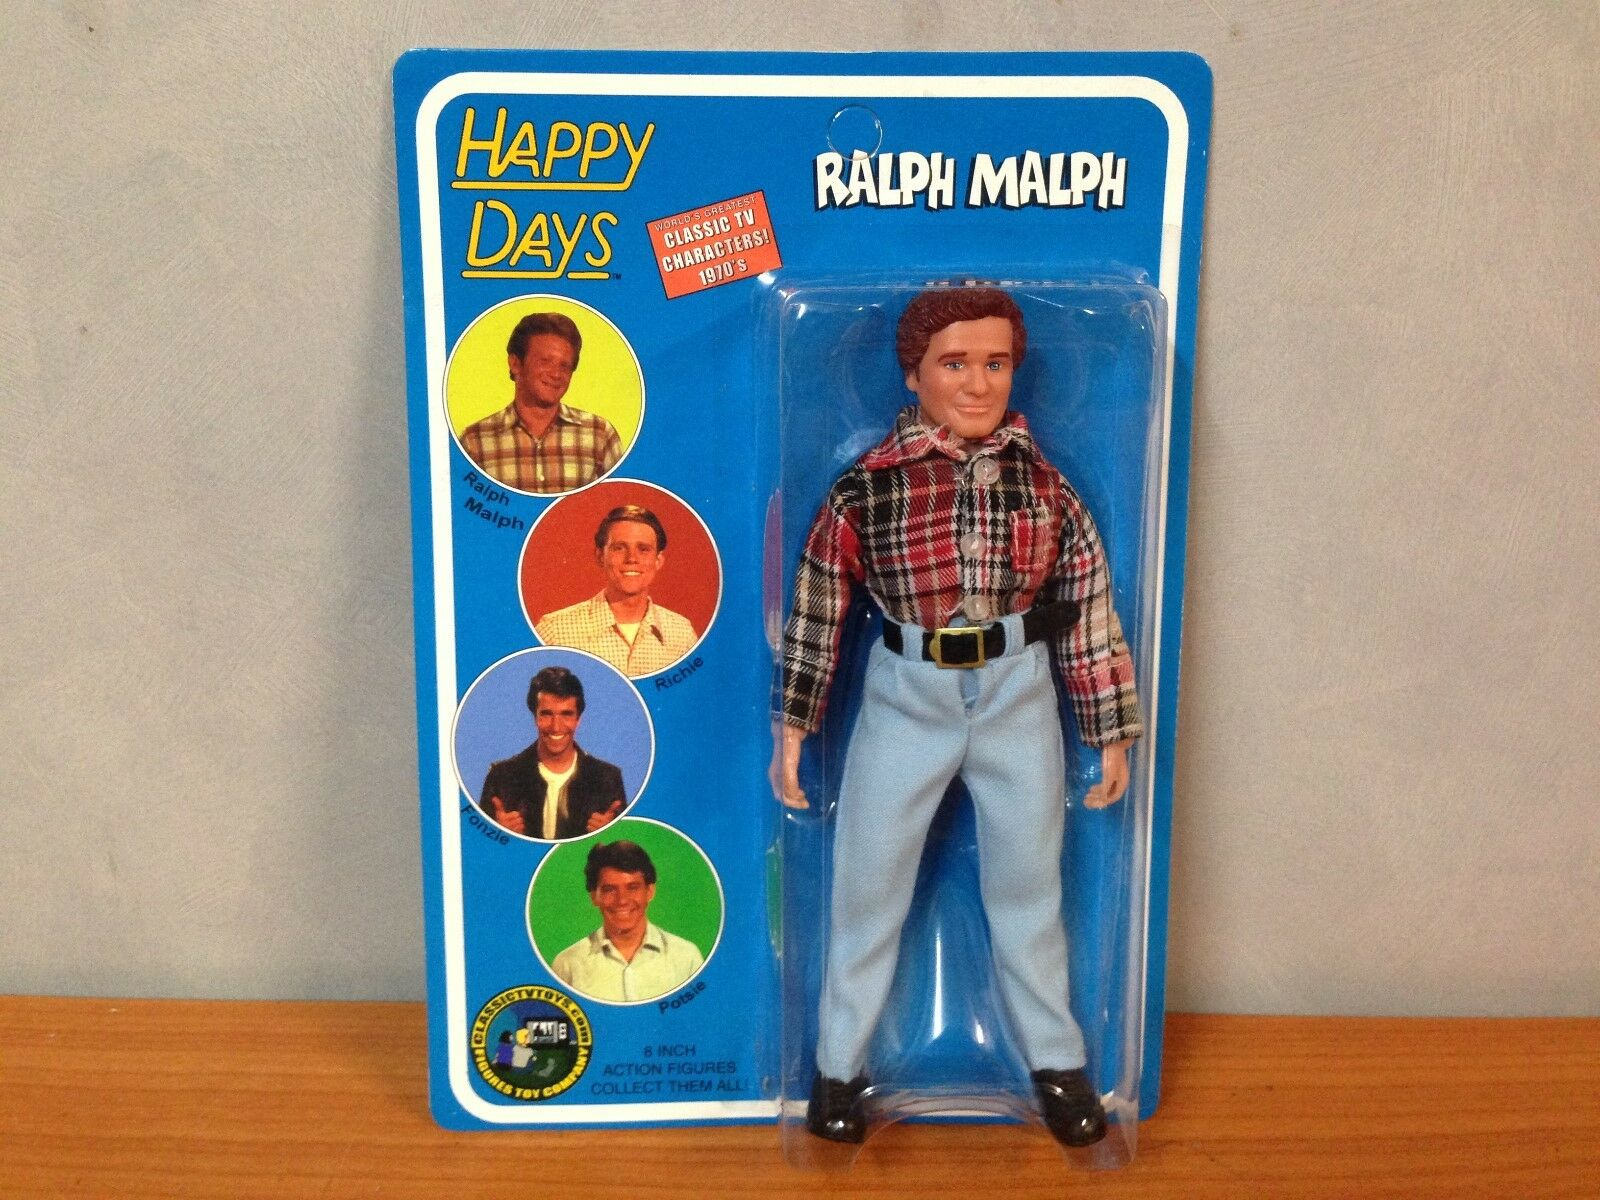 Happy Days Series 1 8inch Action Figure - Ralph Malph - MOSC